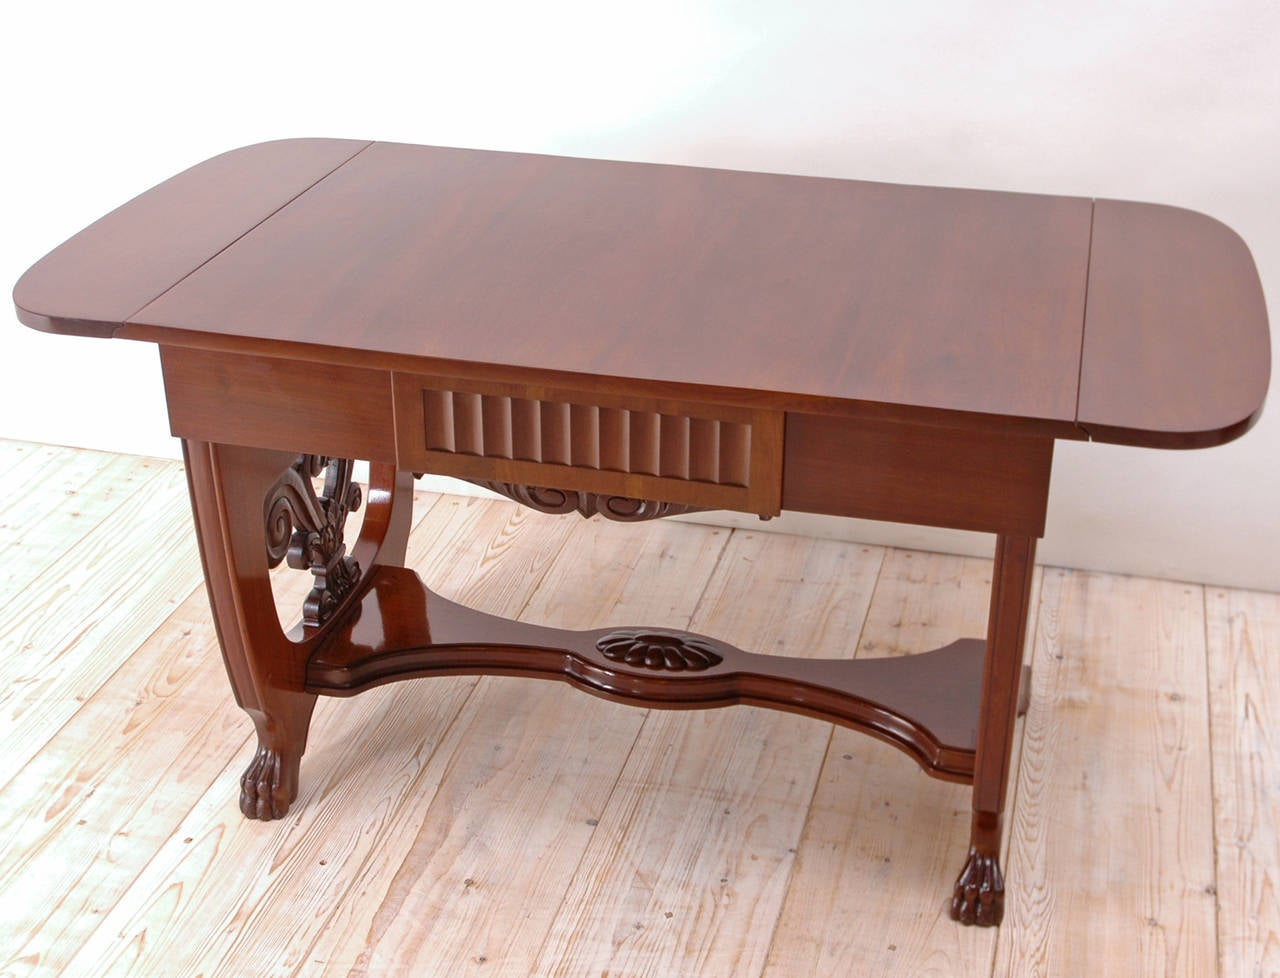 Baltic Empire Style Sofa or Writing Table, circa 1910 in Mahogany In Good Condition For Sale In Miami, FL